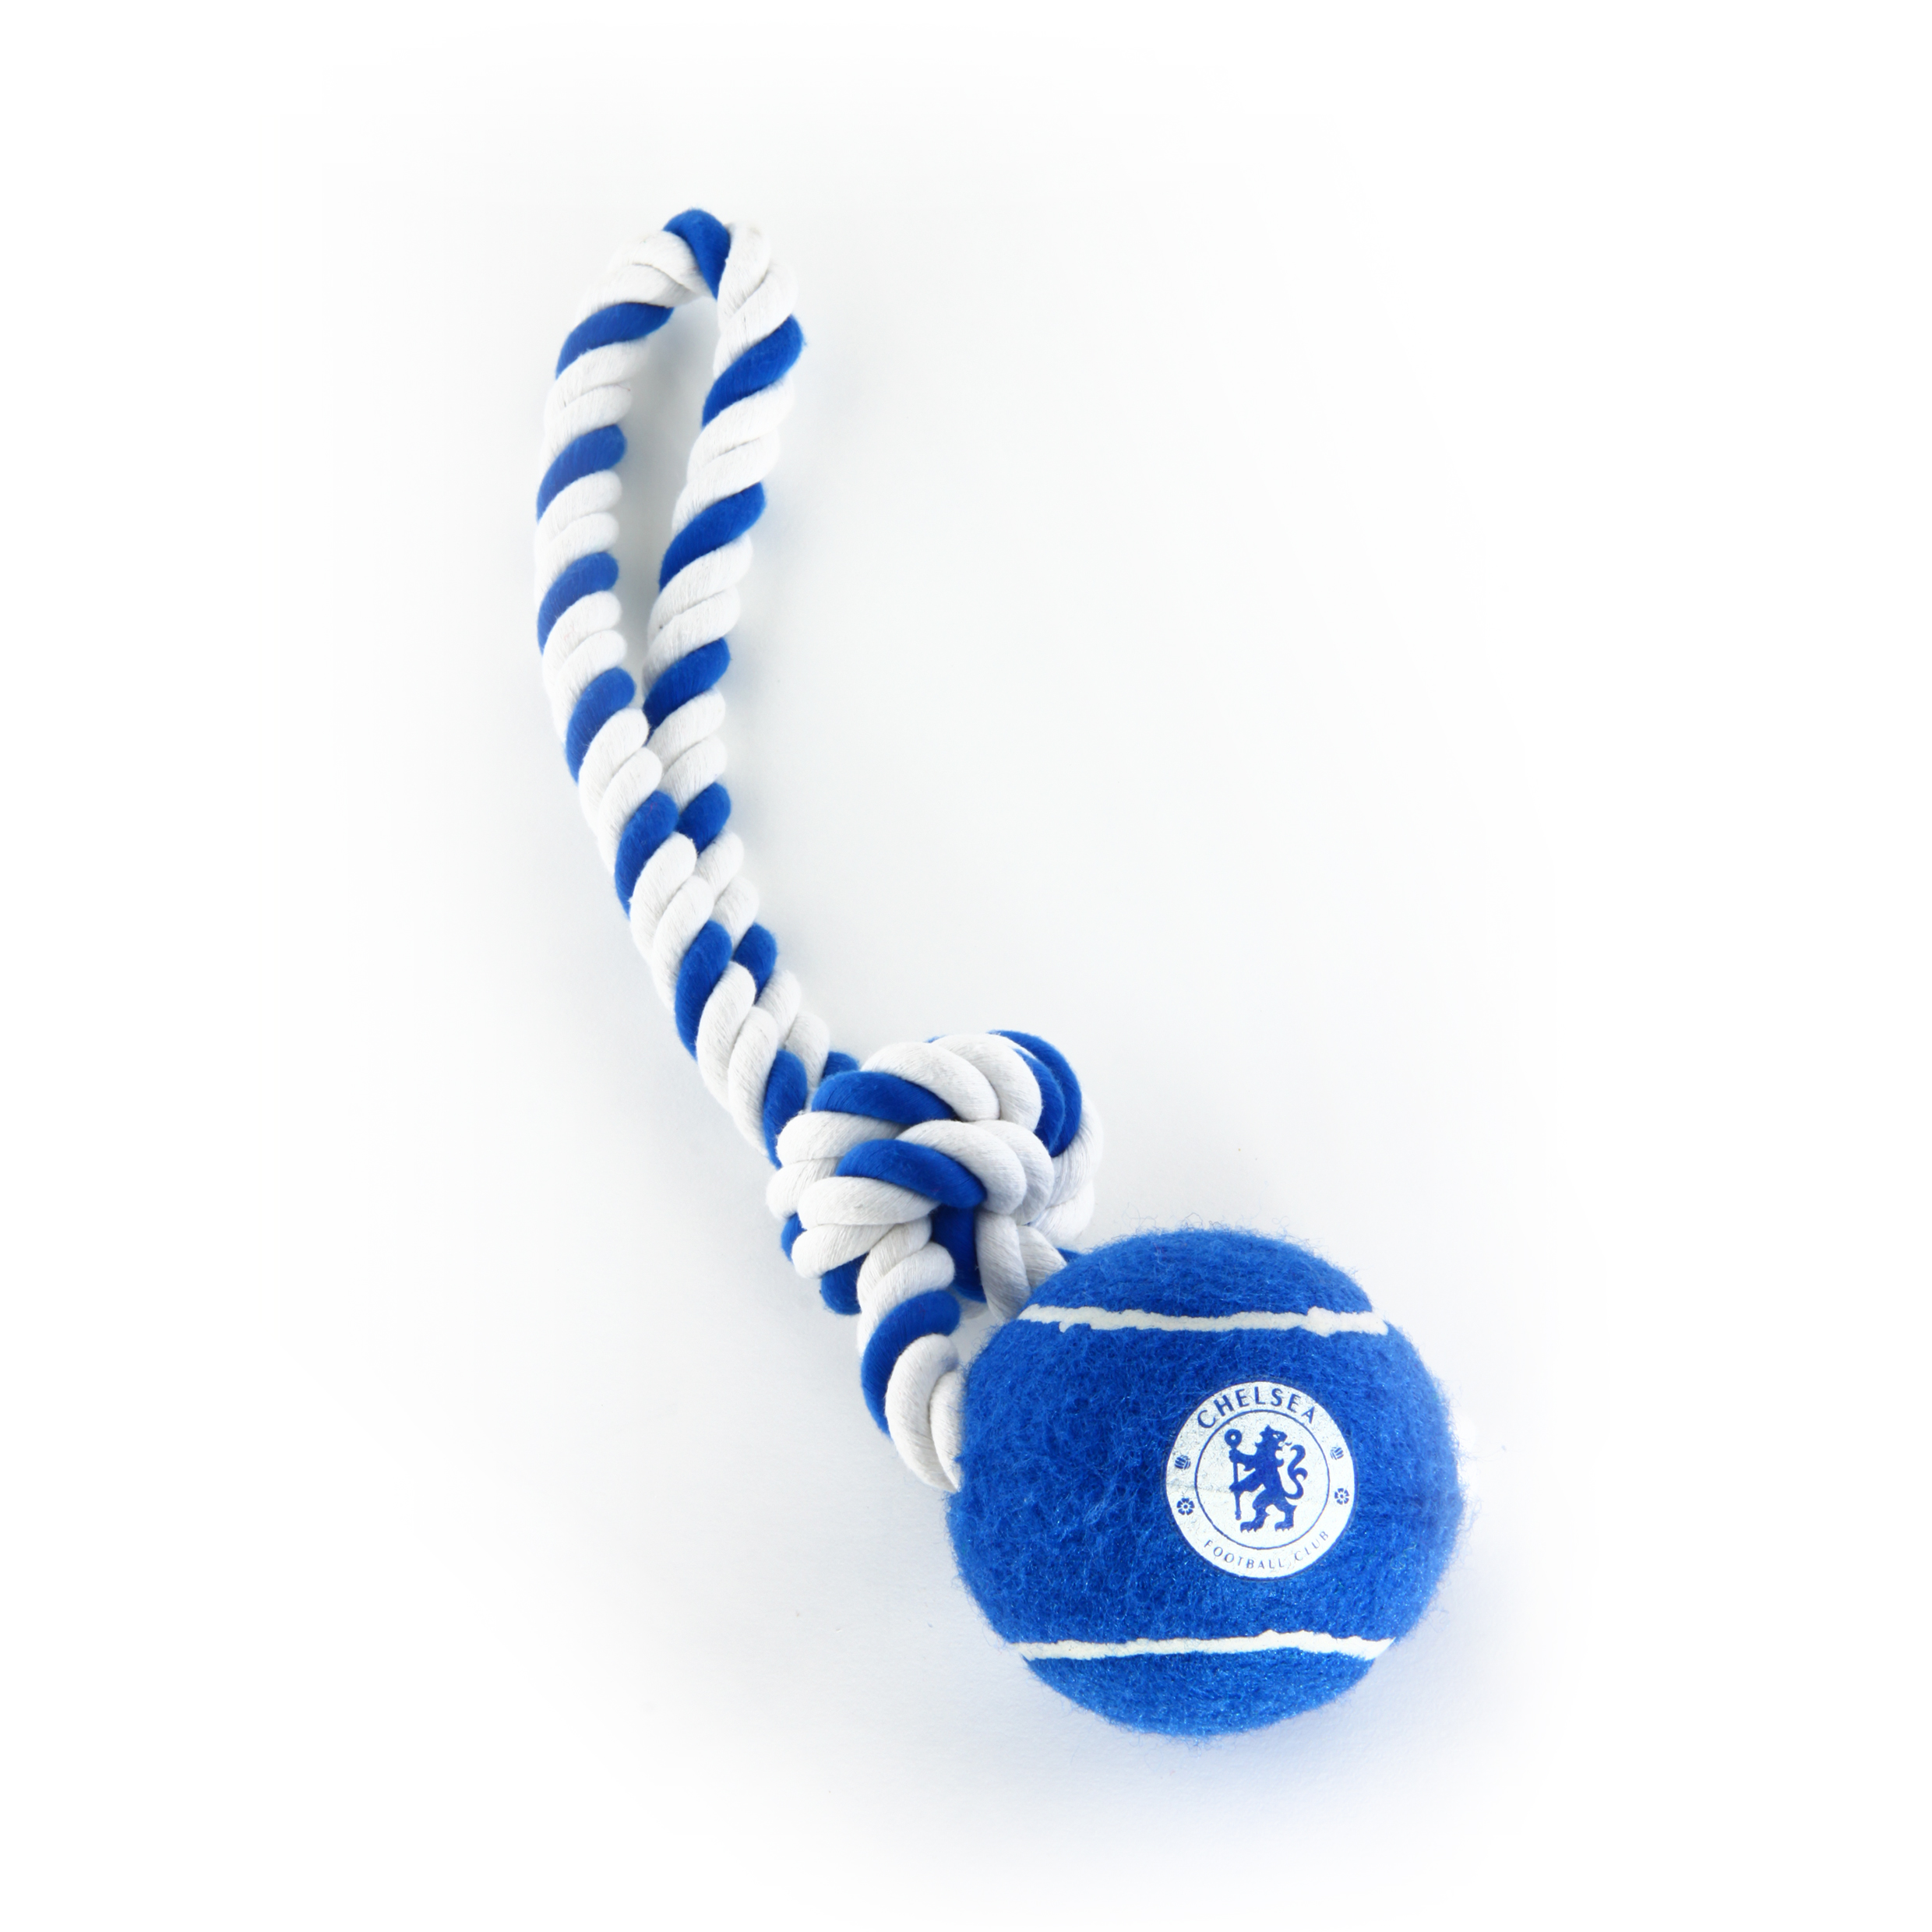 Chelsea Rope and Ball Tugger Dog Toy